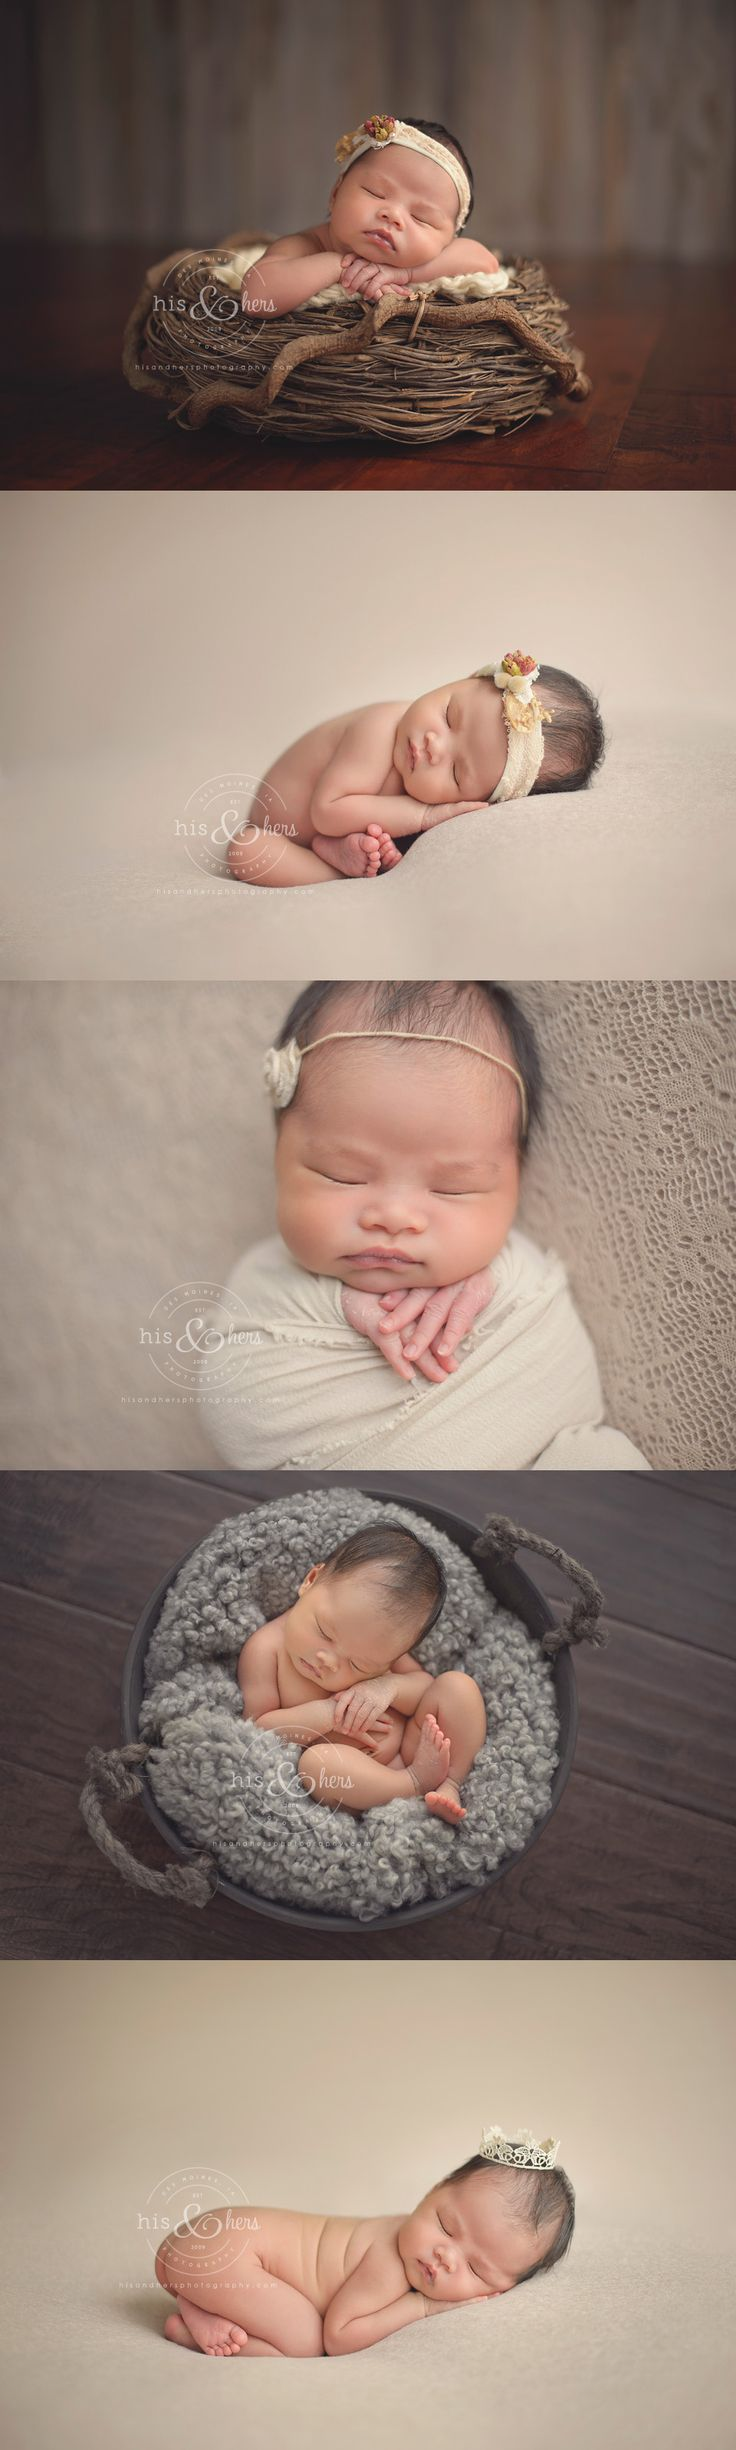 9-day-old Alexandria | Des Moines, IA photographer, Darcy Milder | His & Hers